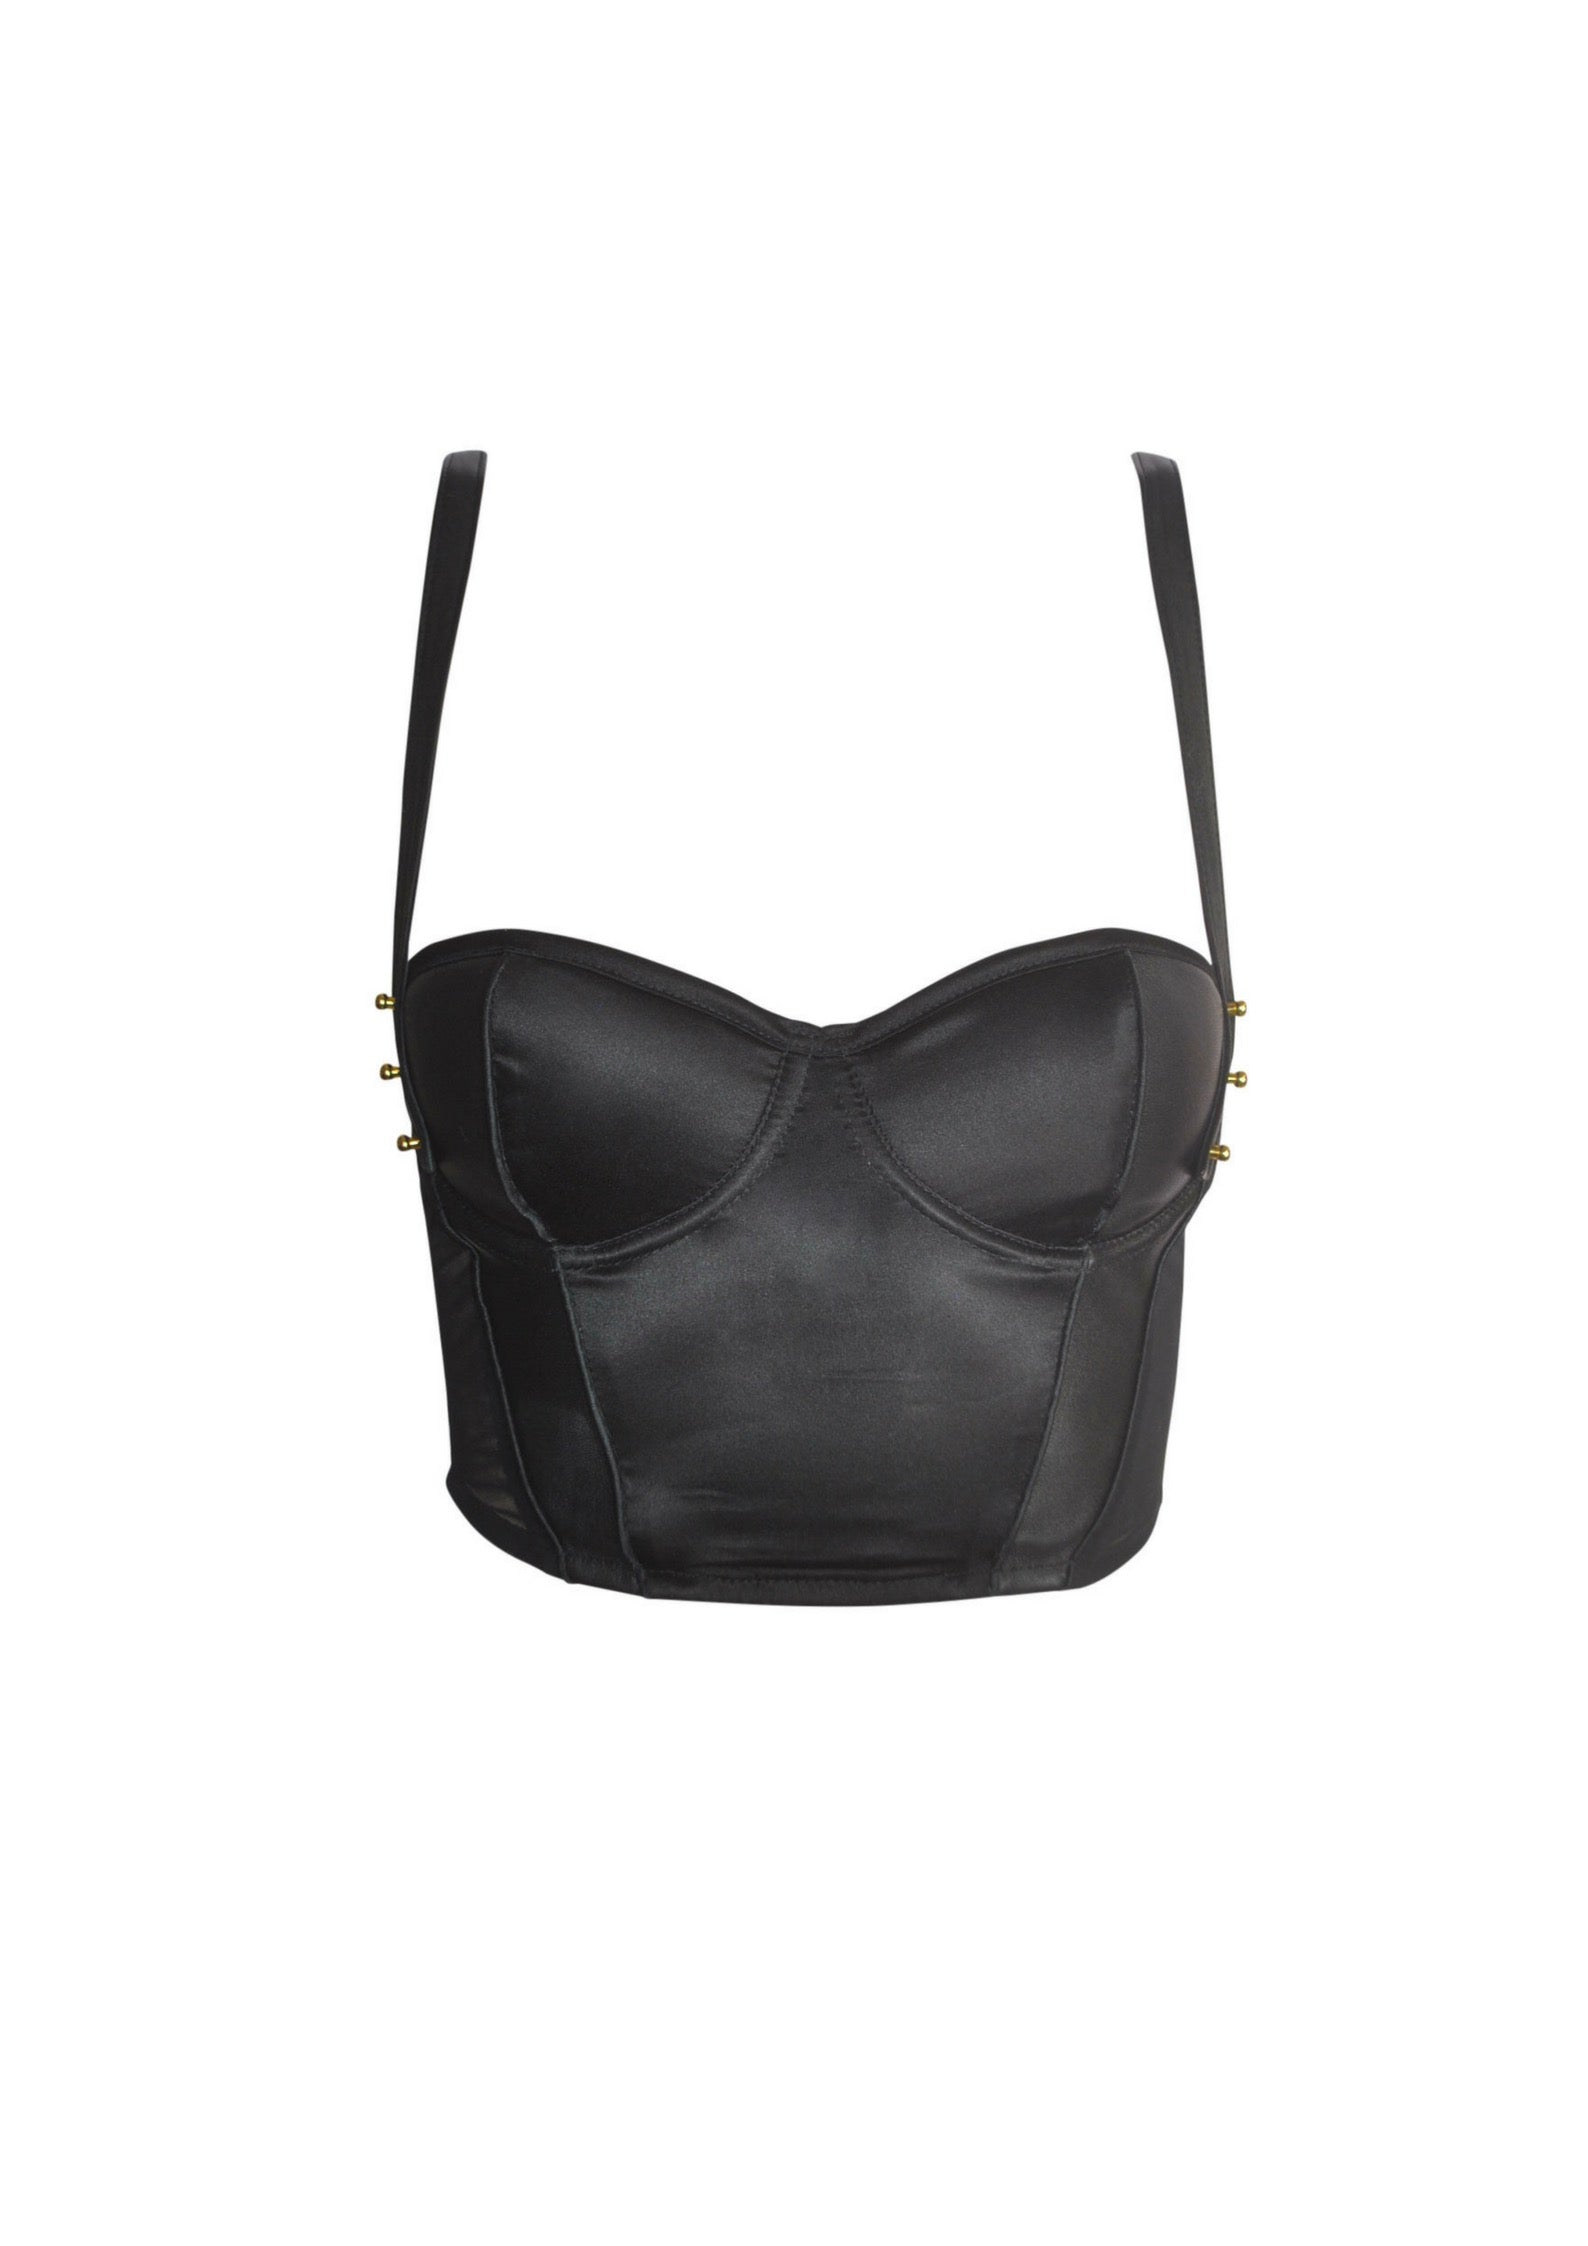 Lola 'n' Leather Bustier - Available now